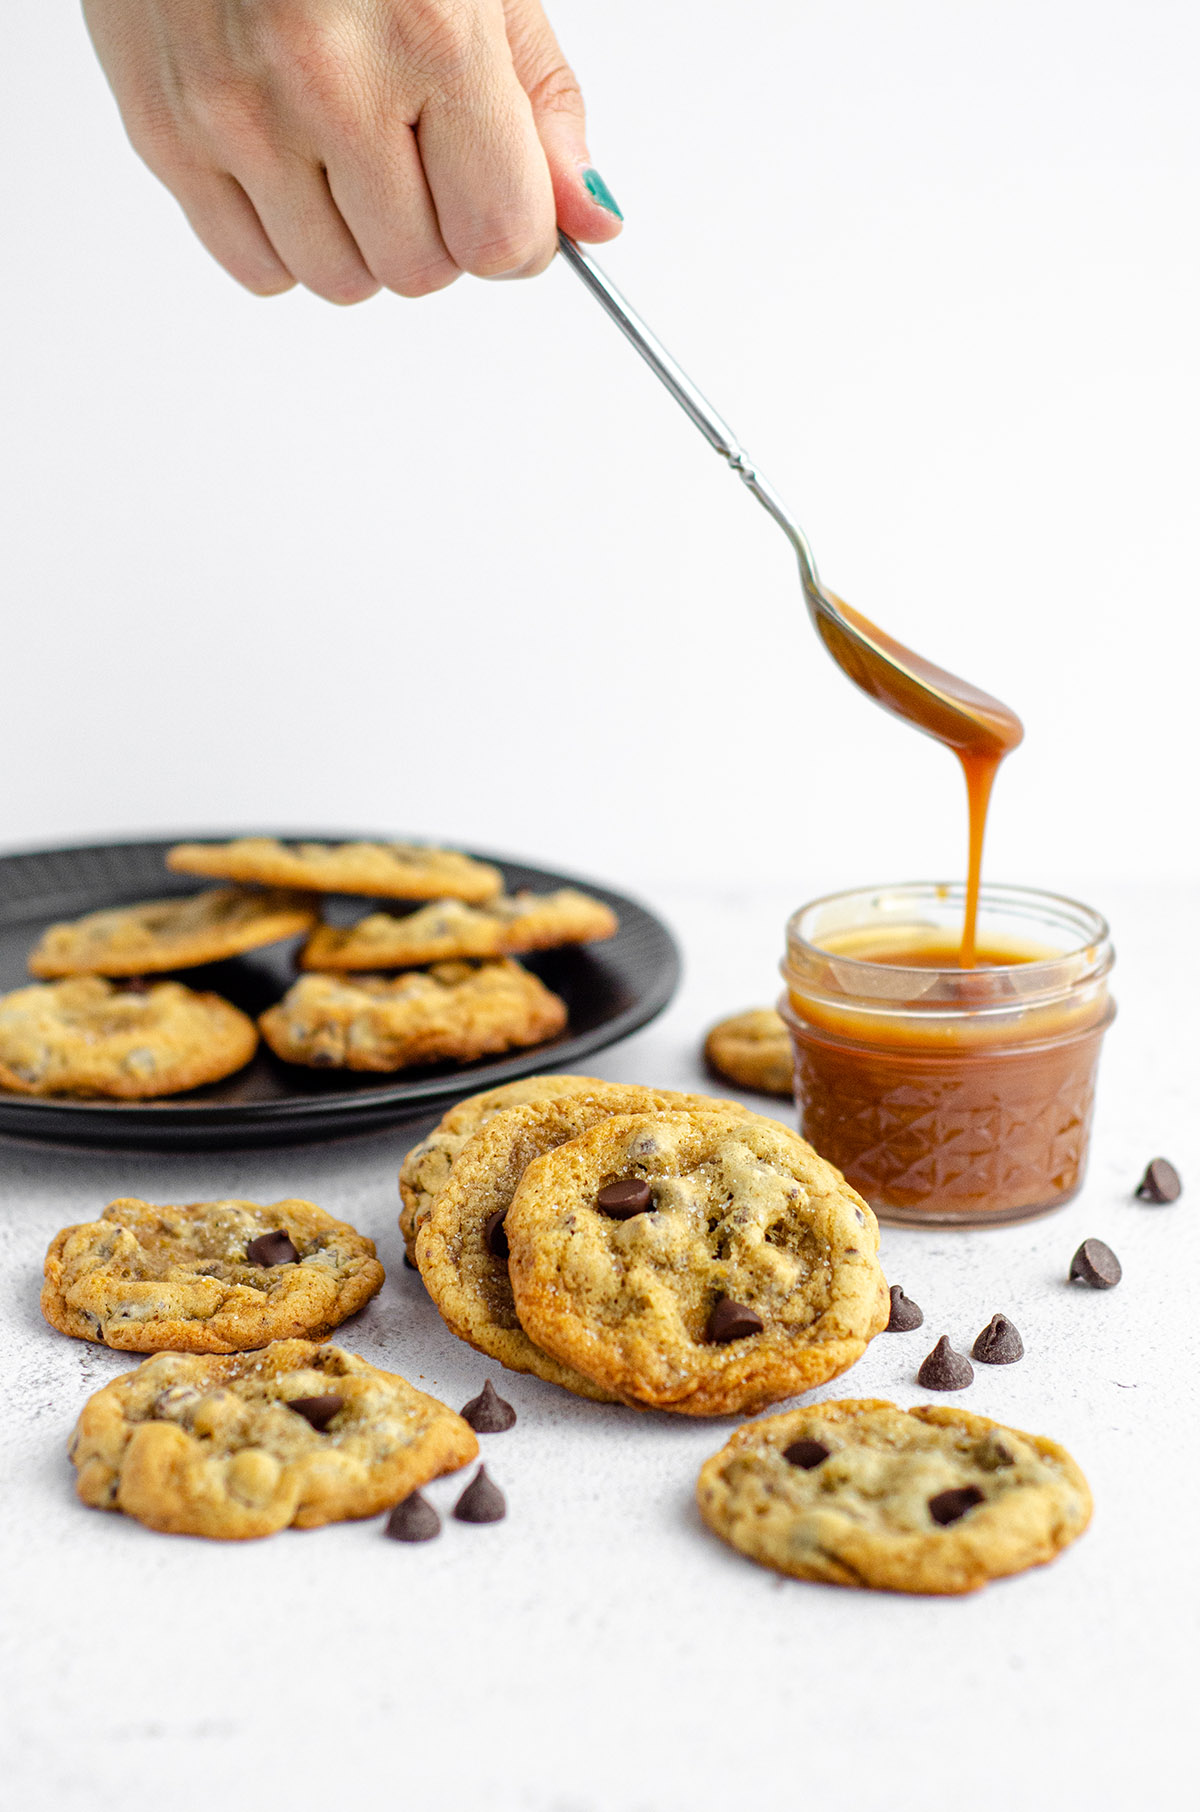 salted caramel chocolate chip cookies with a jar of salted caramel sauce in the background